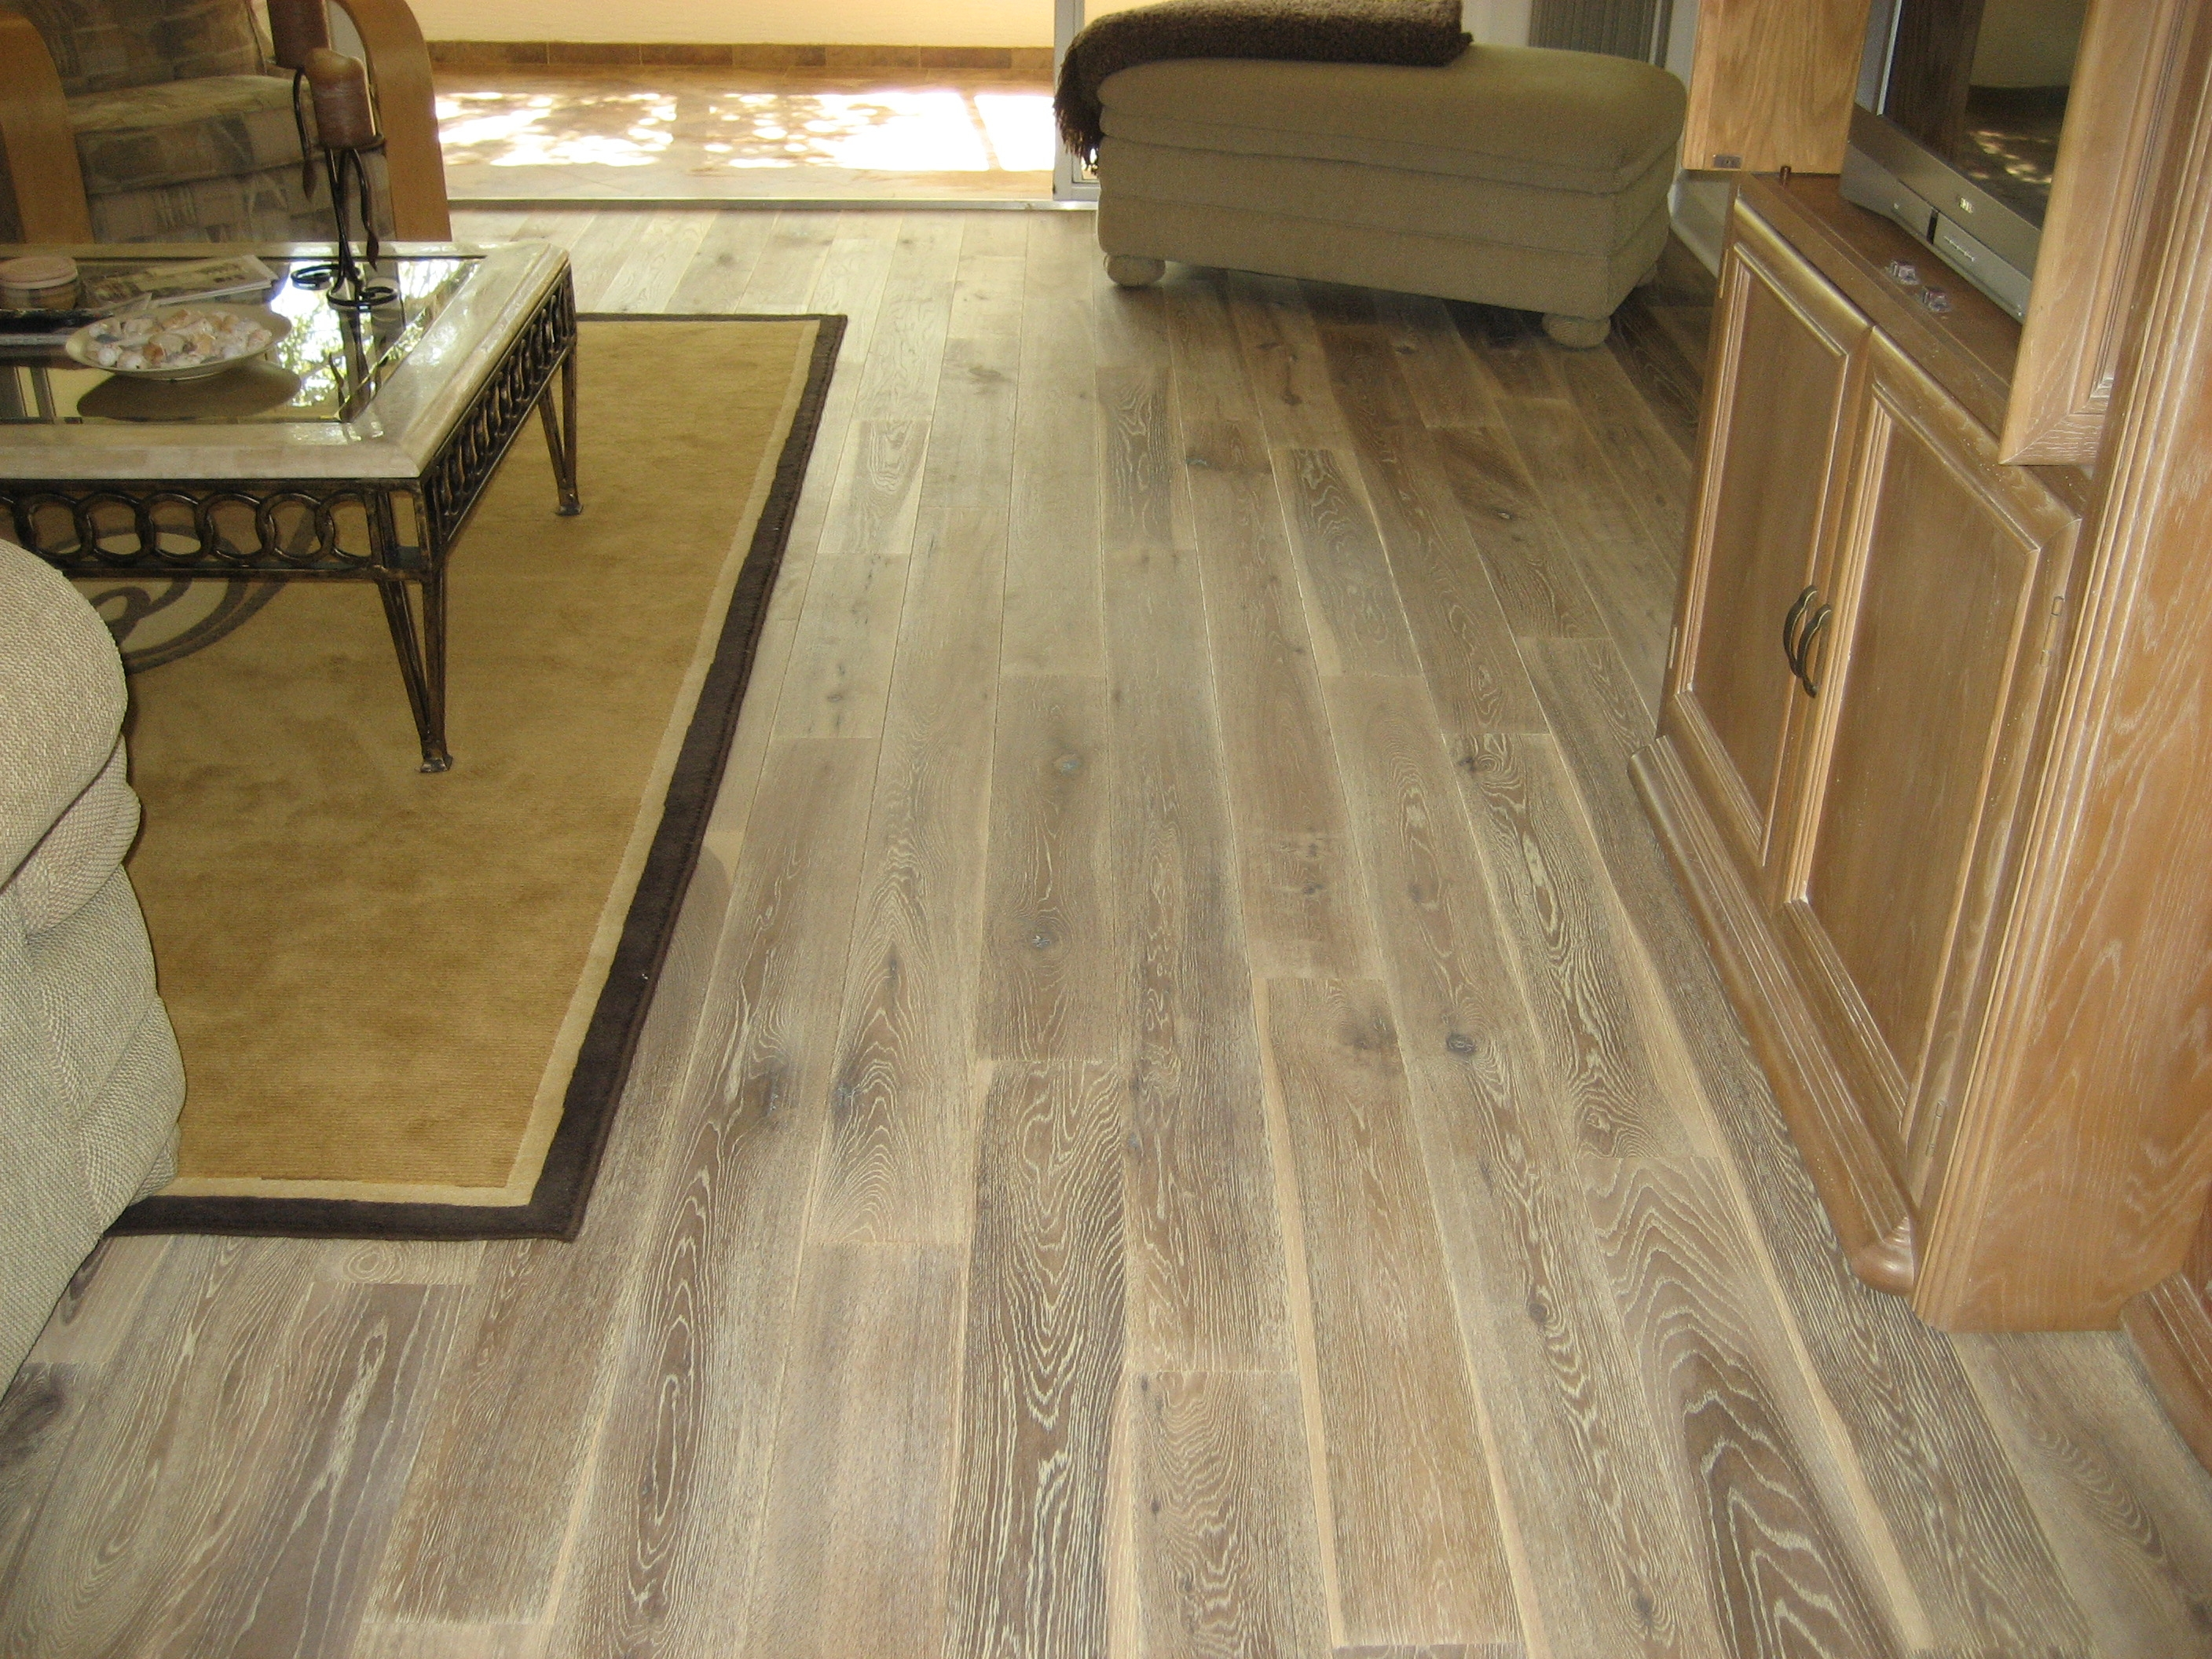 Wood Look Tile Floor And Decortile floor ceramic tile jp custom tile and wood floors